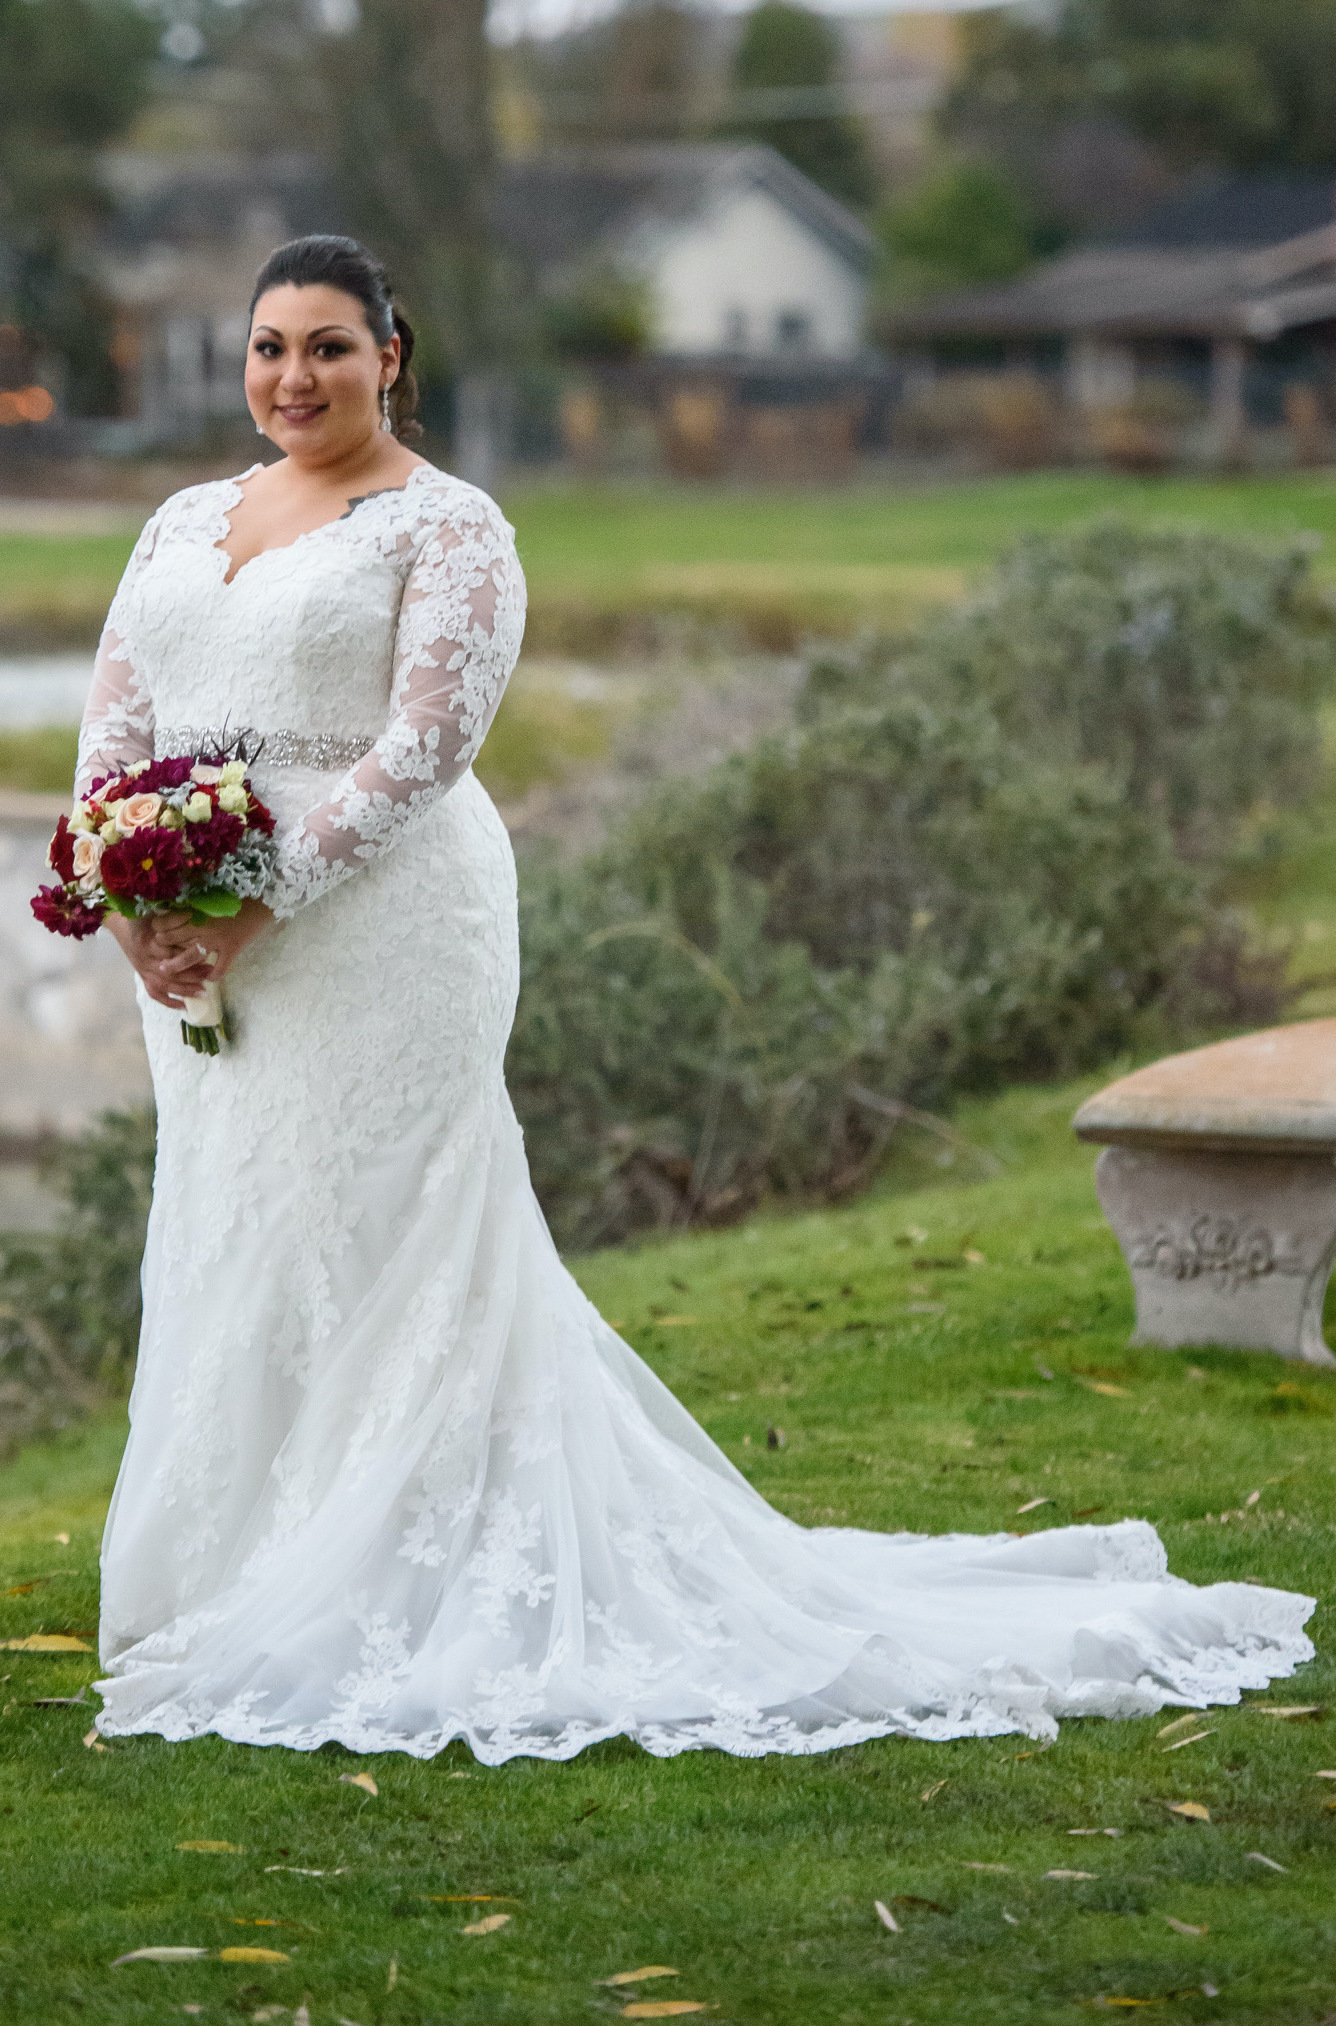 This bride designed a long sleeve lace wedding dress online with Anomalie, the leading online wedding dress company.